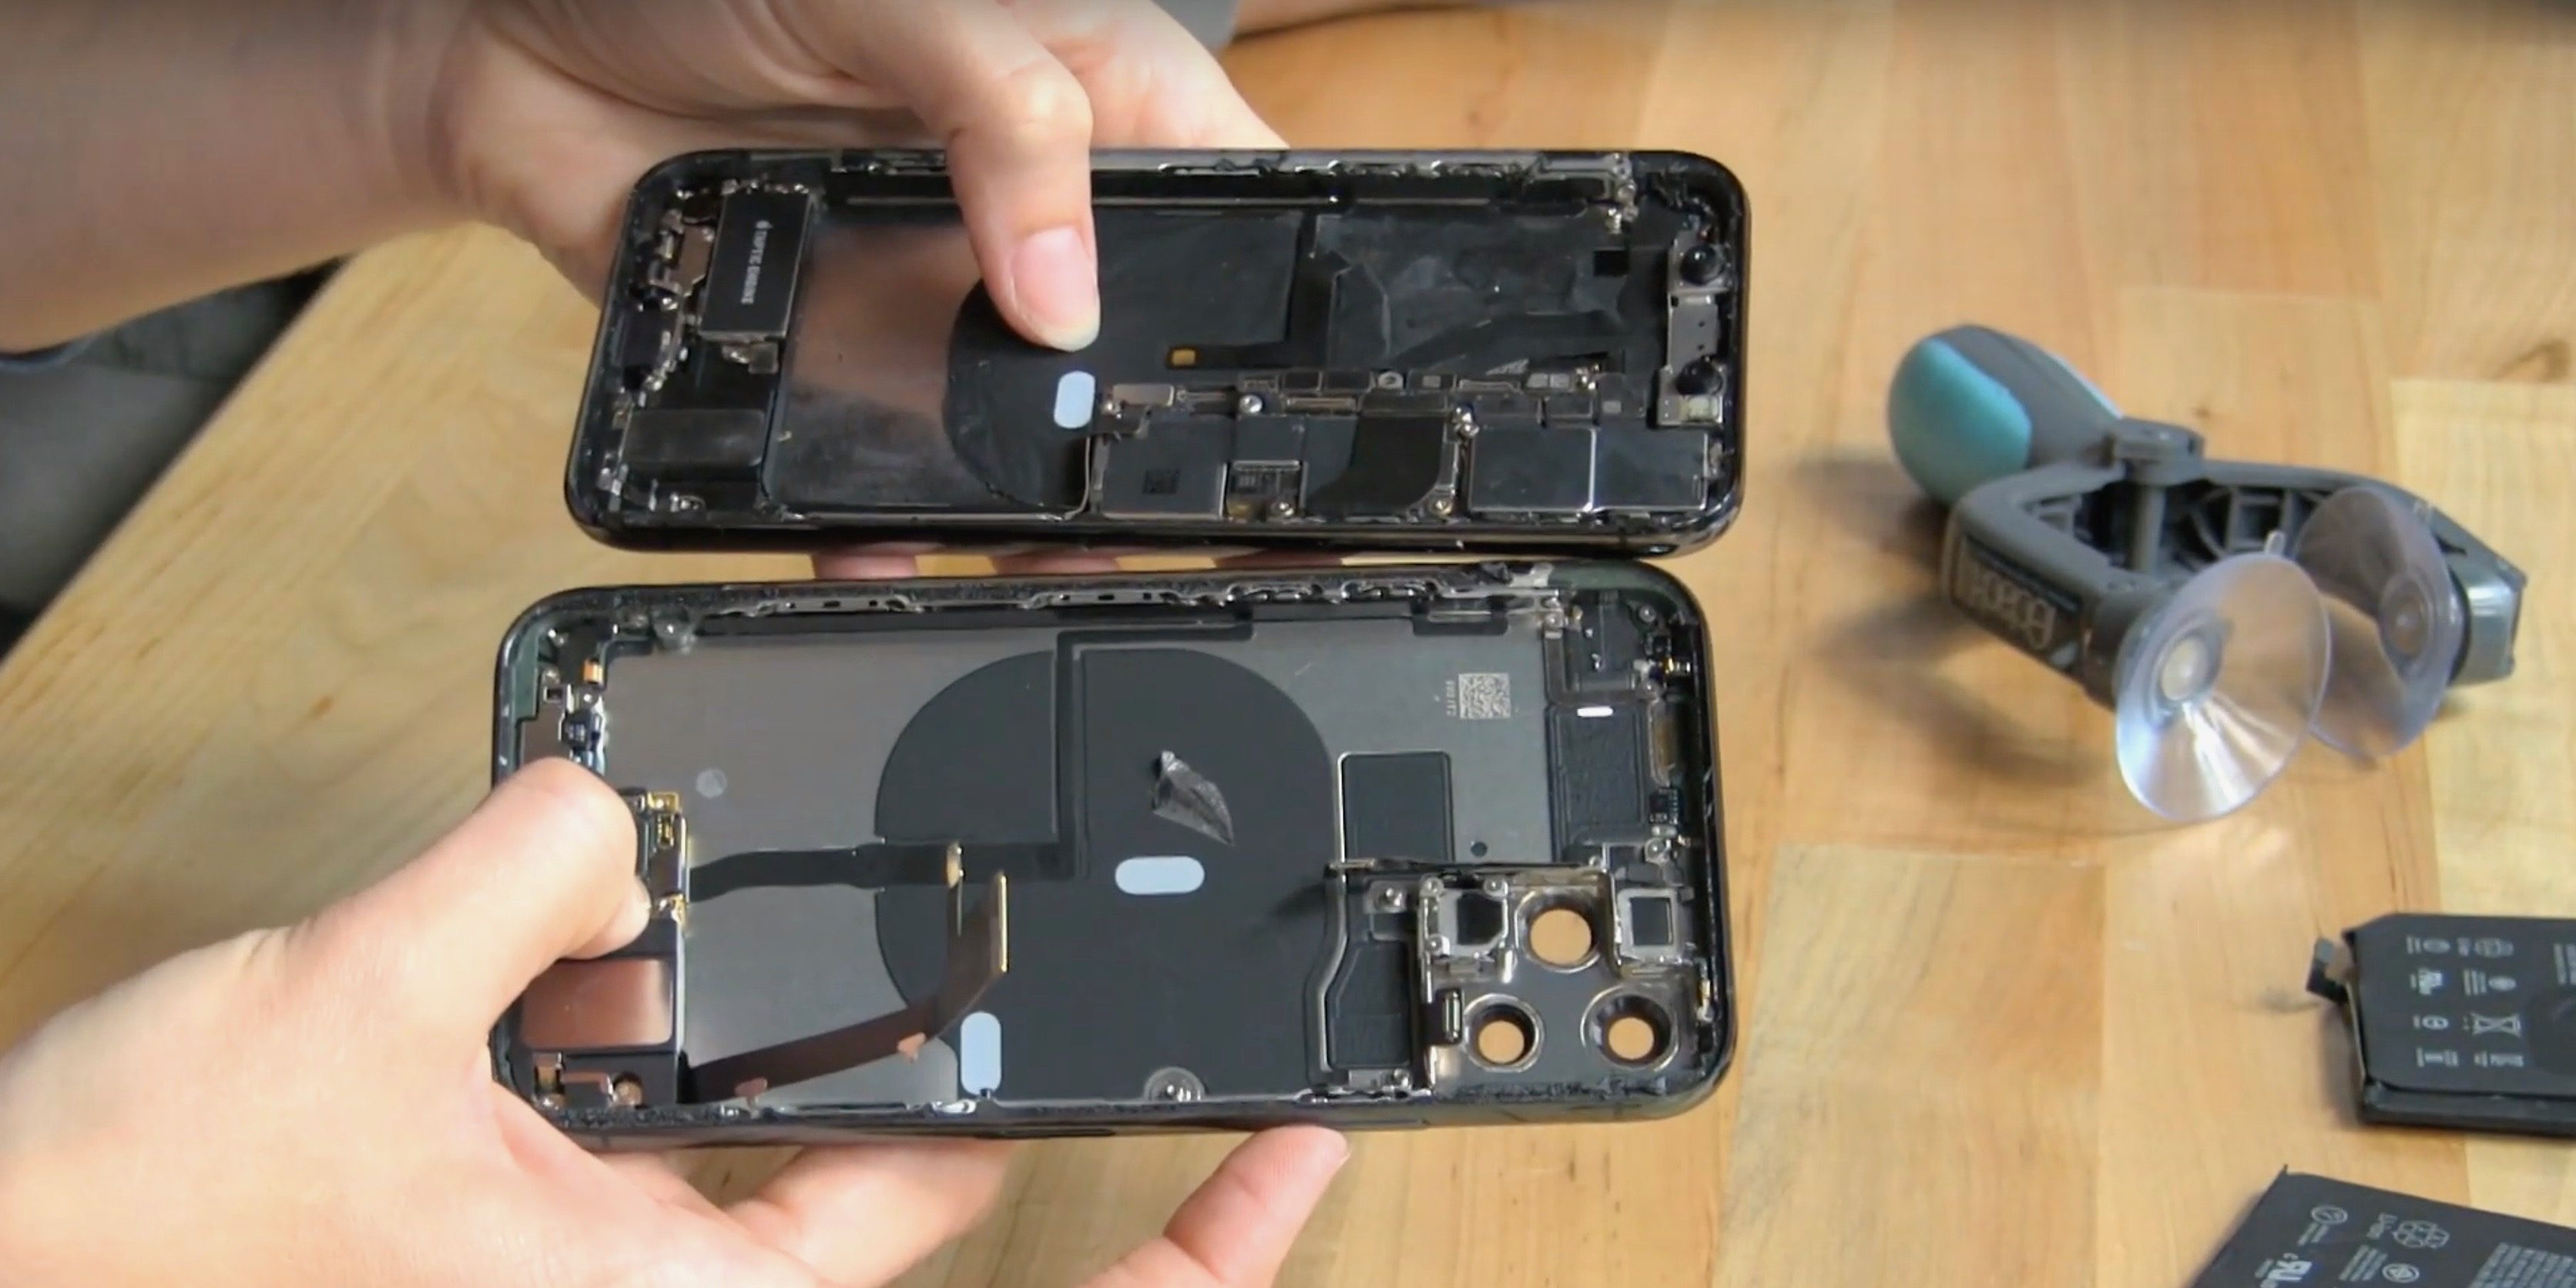 iPhone 11 Pro teardown reveals new board under battery, possibly for bilateral wireless charging